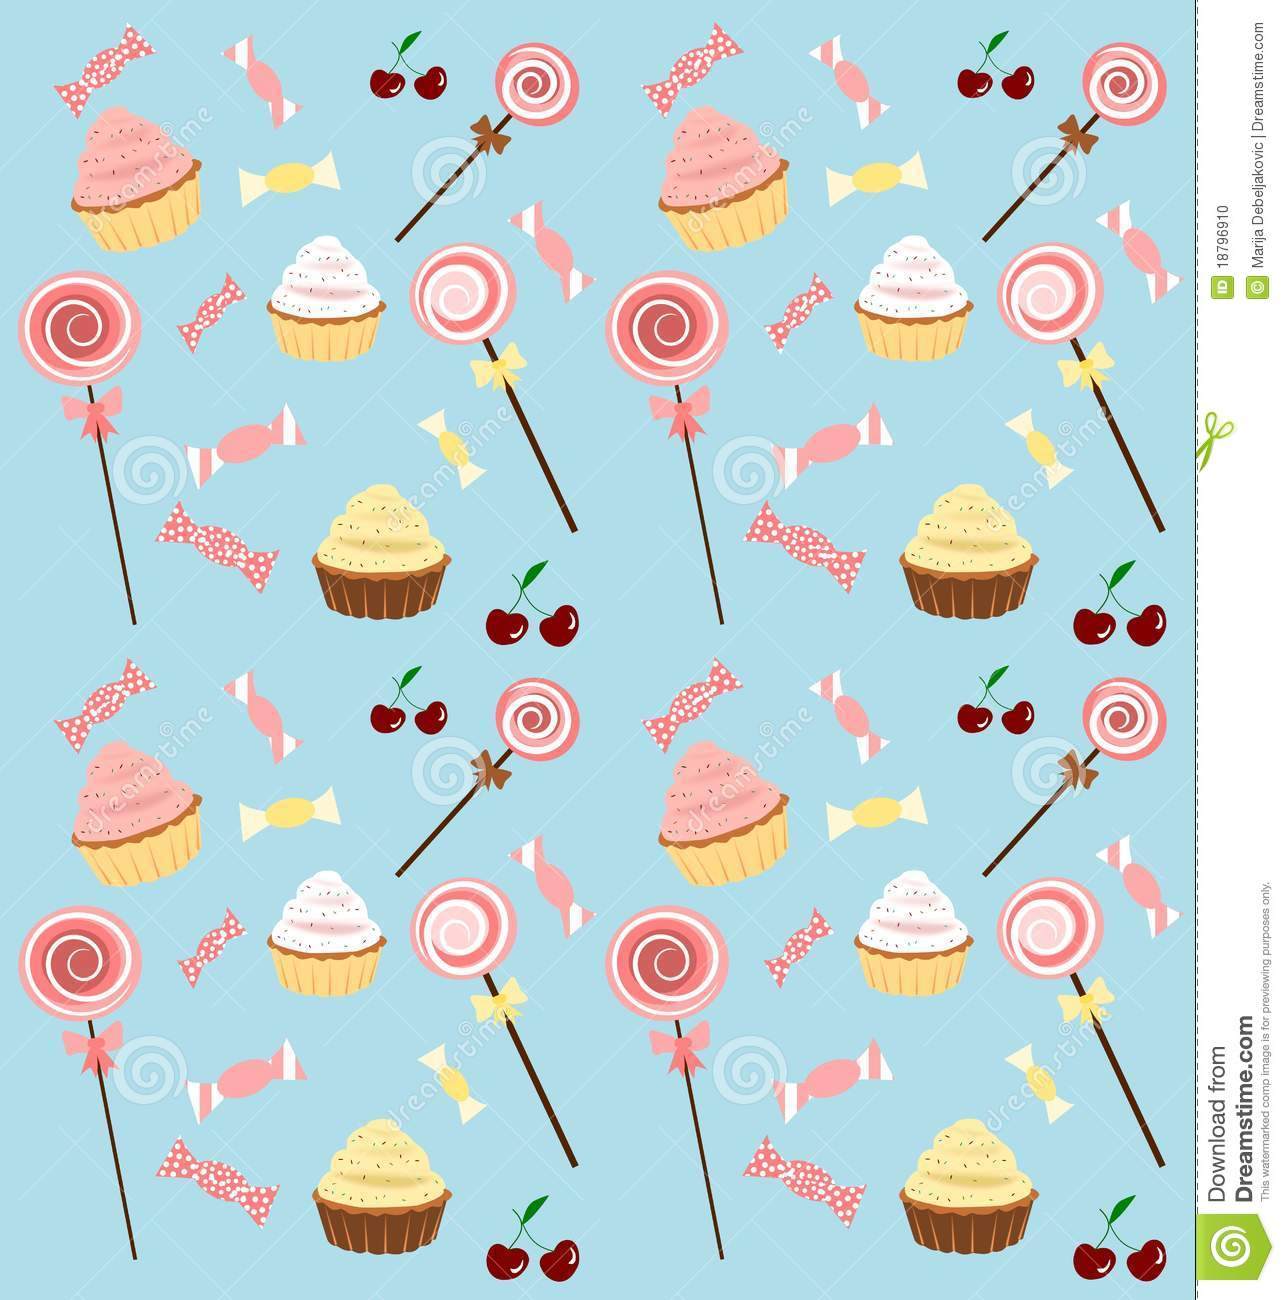 Seamless background with lollipops cupcakes and candies.